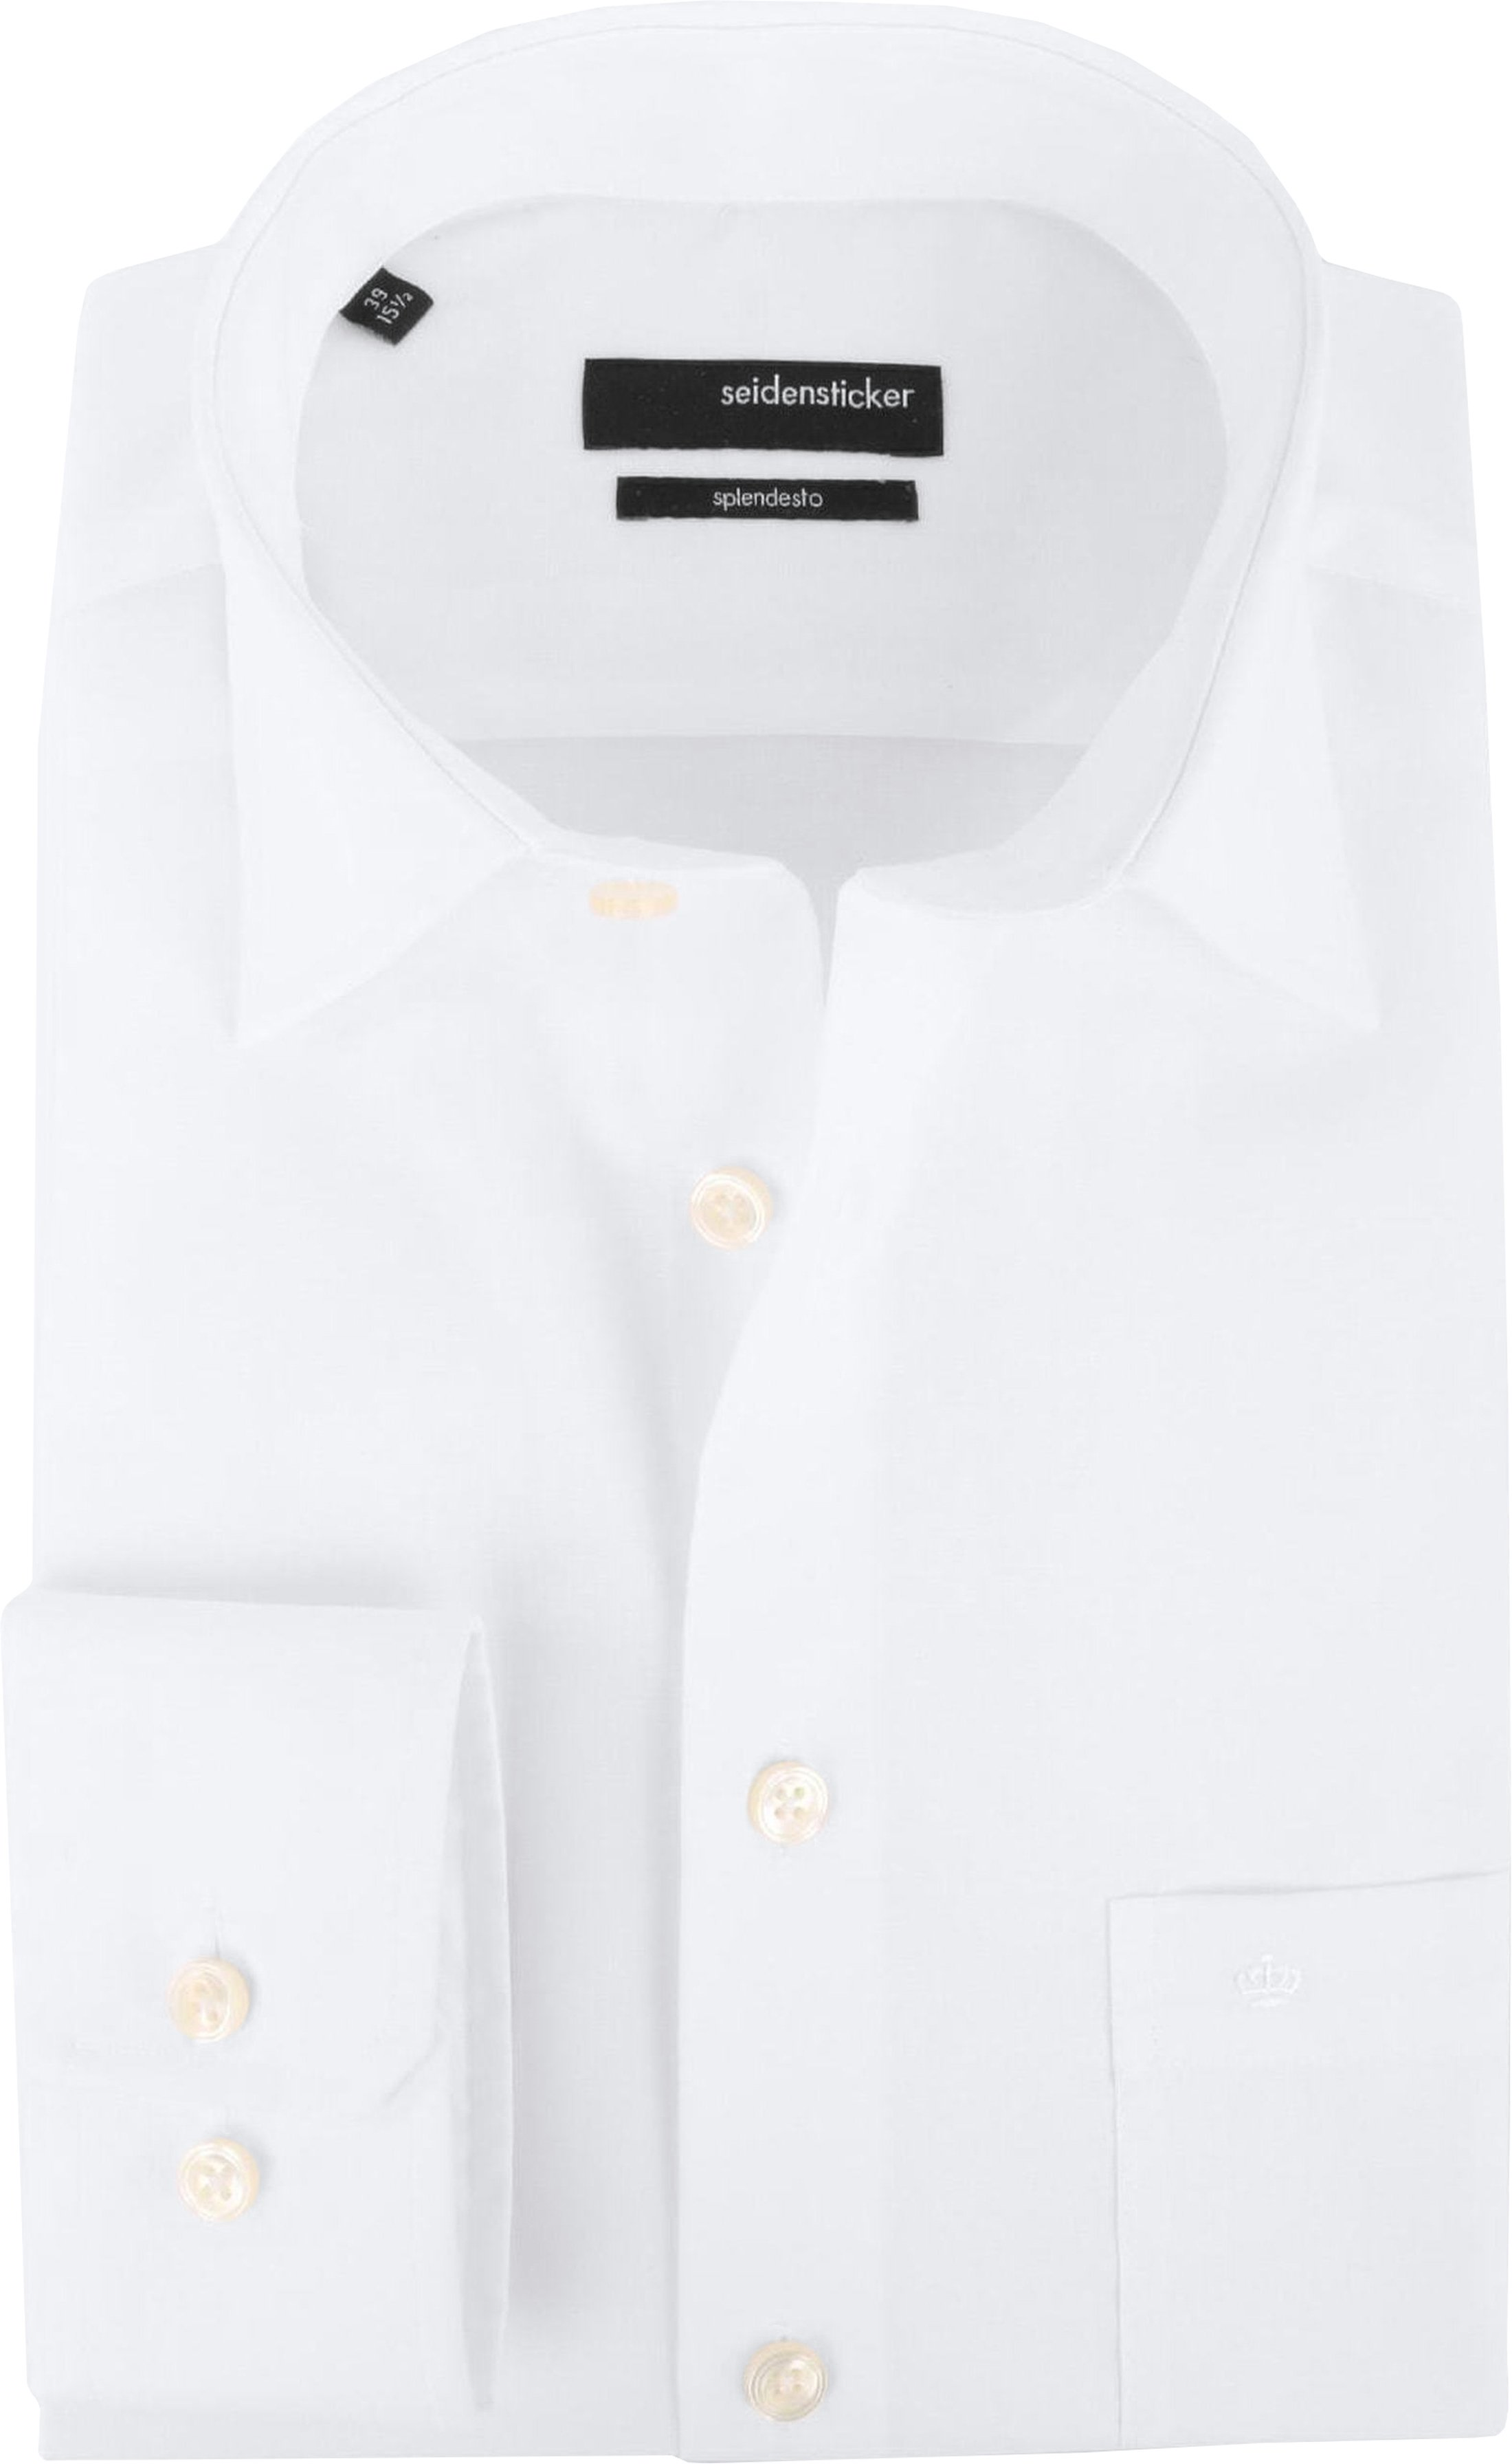 Seidensticker Splendesto Shirt White